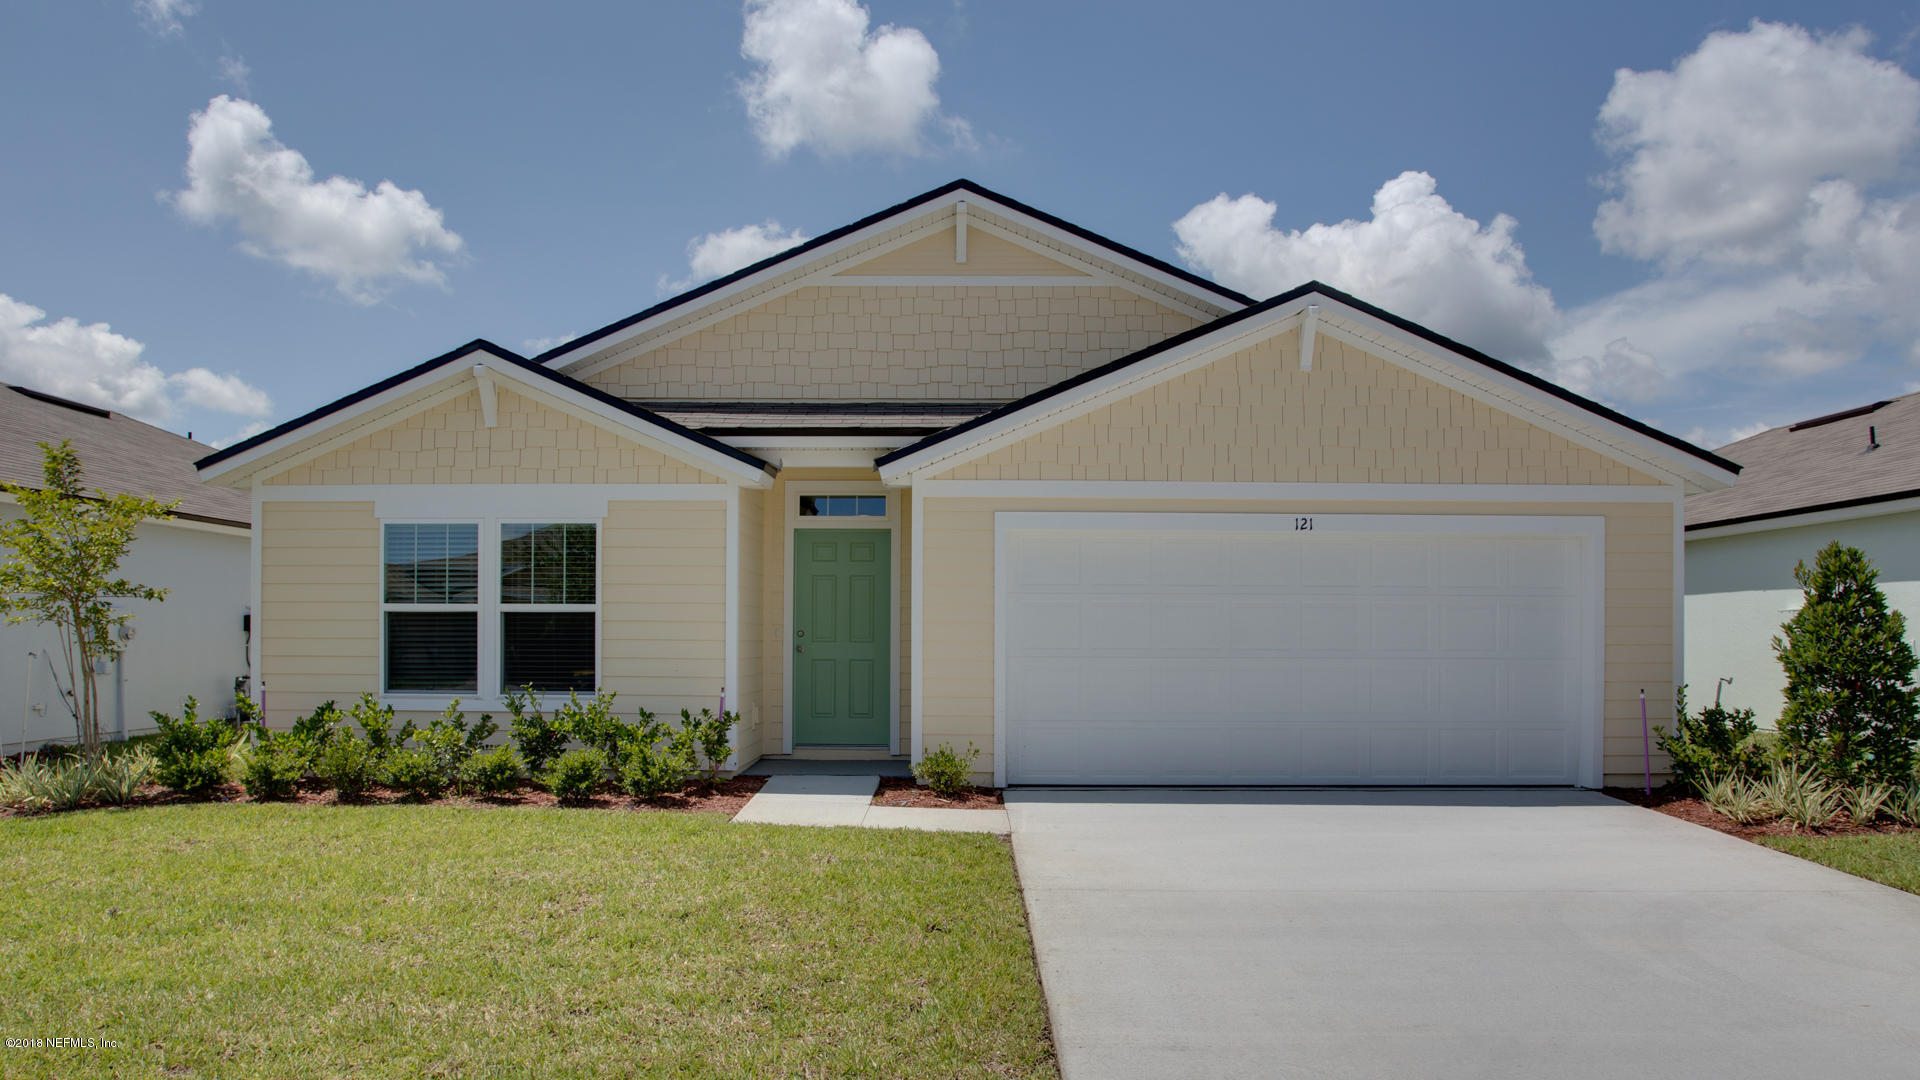 121 GOLF VIEW, BUNNELL, FLORIDA 32110, 4 Bedrooms Bedrooms, ,2 BathroomsBathrooms,Residential - single family,For sale,GOLF VIEW,906376